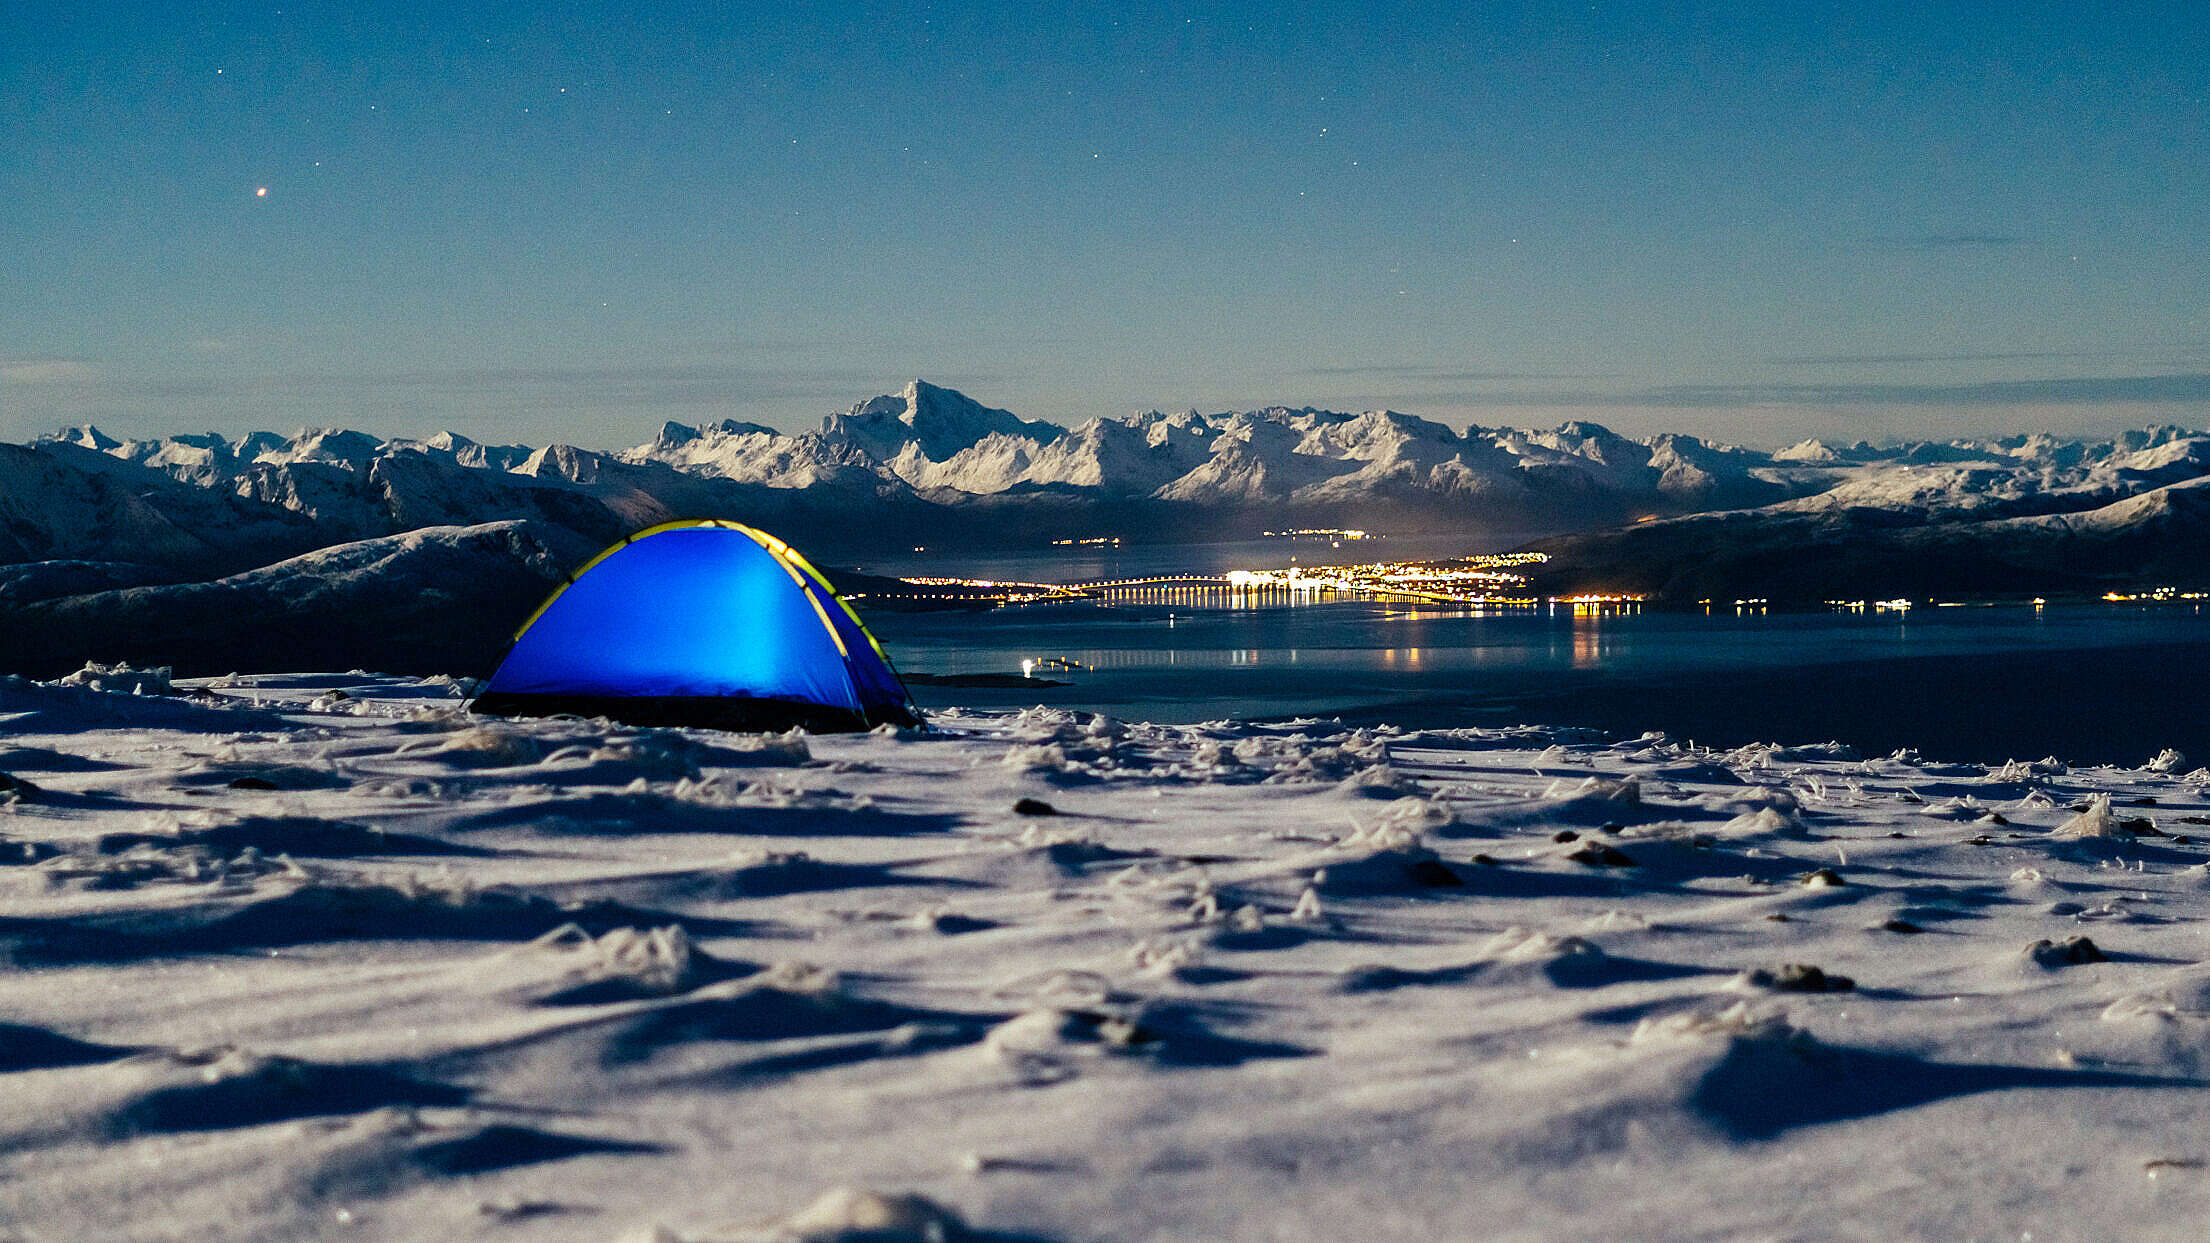 Camping Place on Snowy Mountain with Fjord View Free Stock Photo